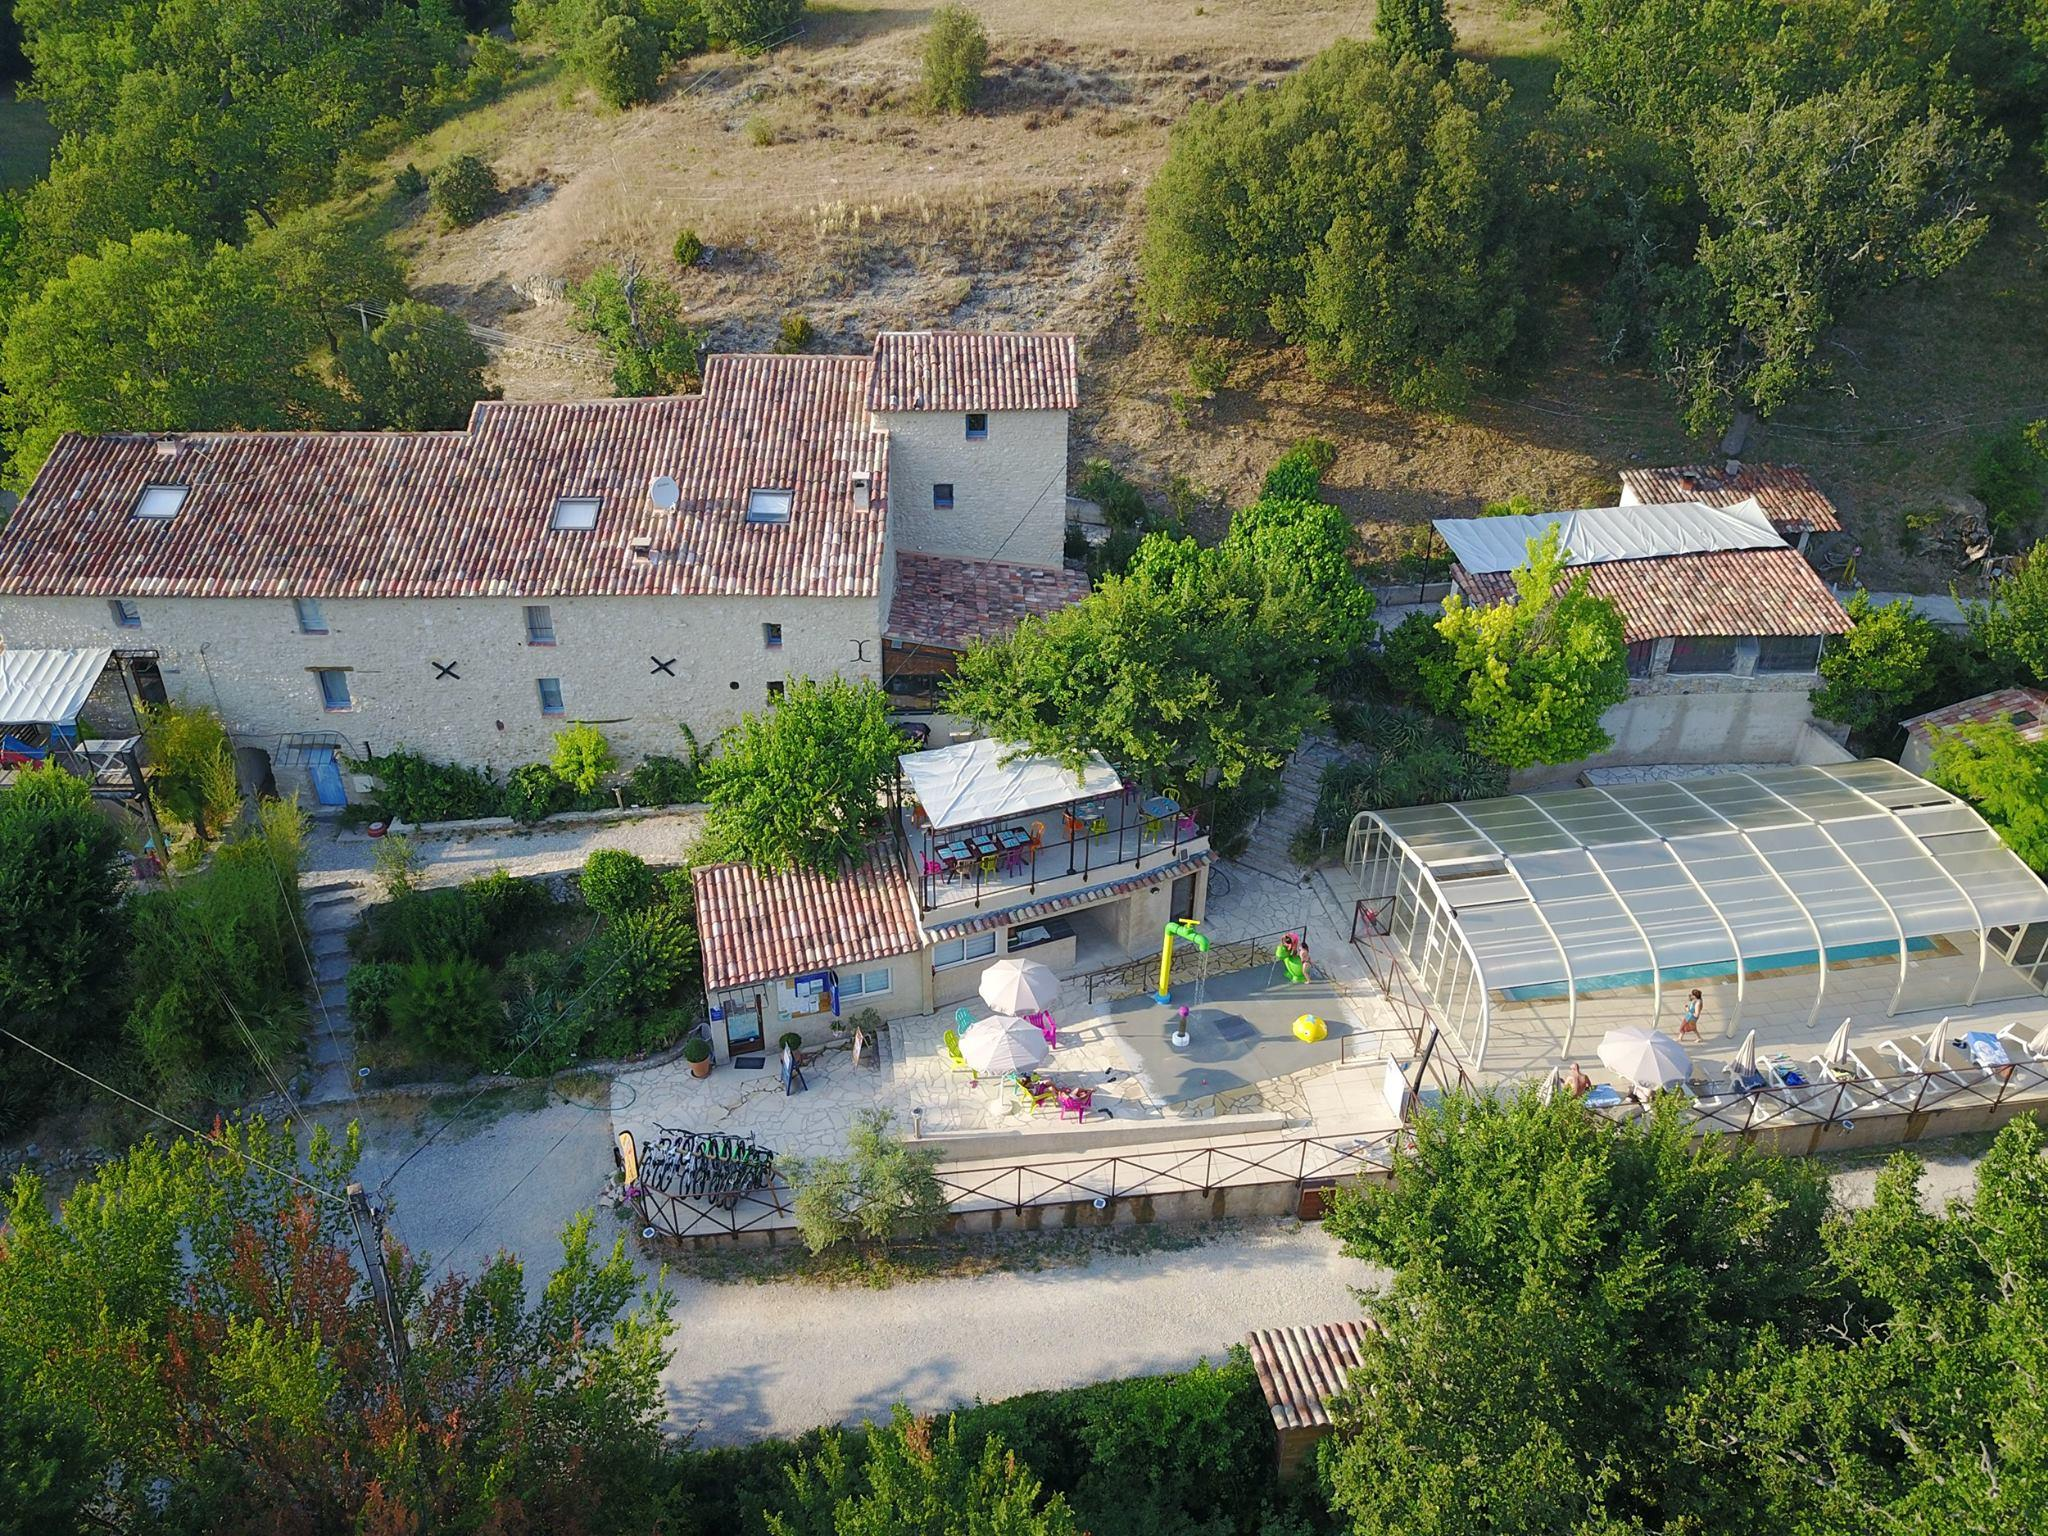 Establishment Flower Camping La Beaume - Esparron-De-Verdon